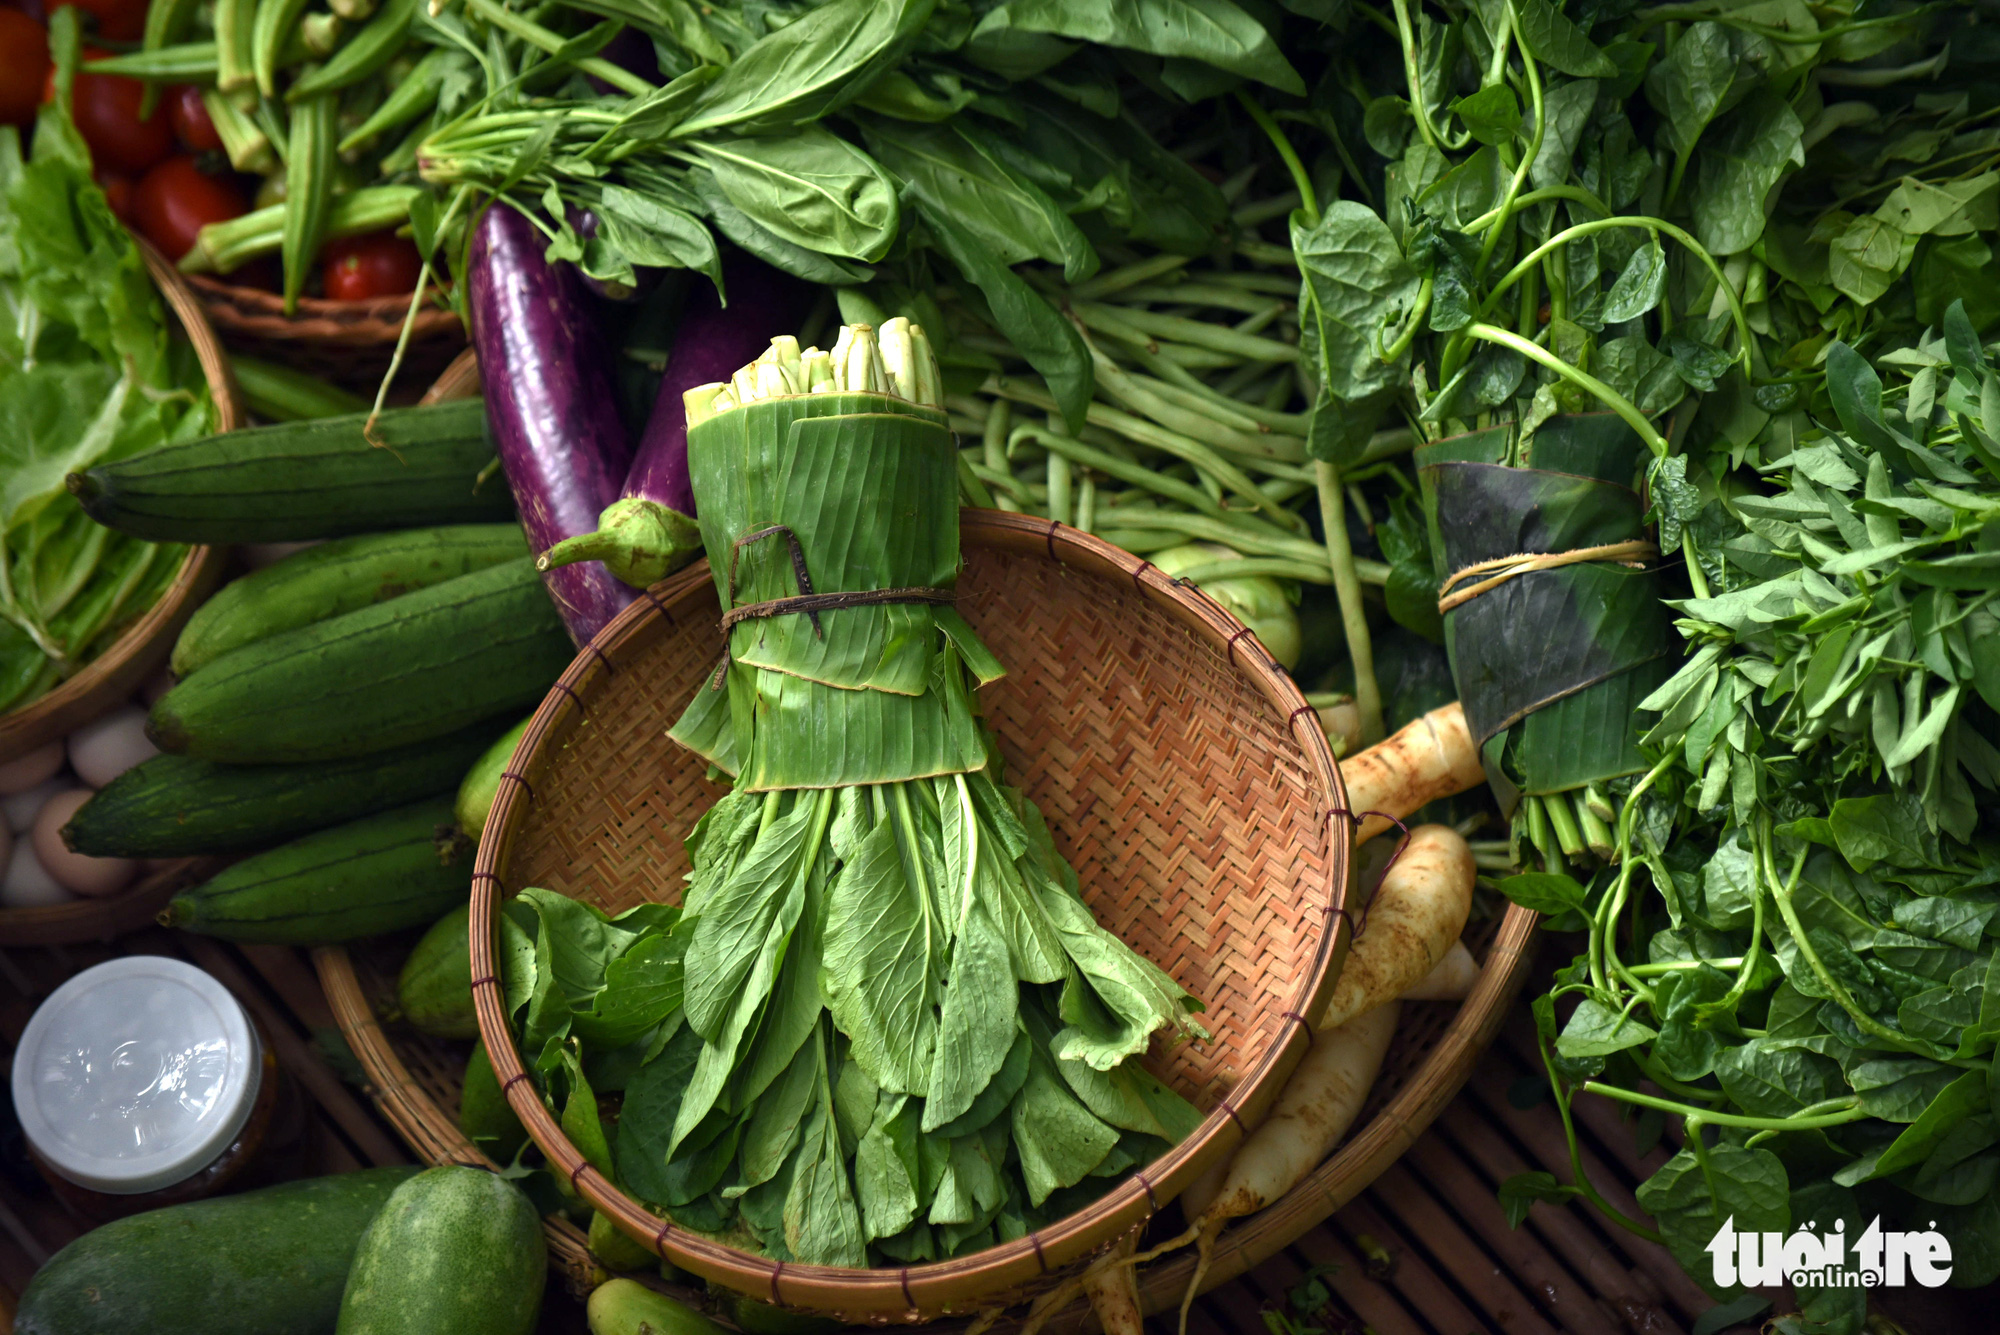 Vegetables wrapped in banana leaves are sold at a 'countryside market' at No. 7 Nguyen Thi Minh Khai Street, District 1, Ho Chi Minh City, Vietnam, May 24, 2020. Photo: Duyen Phan / Tuoi Tre